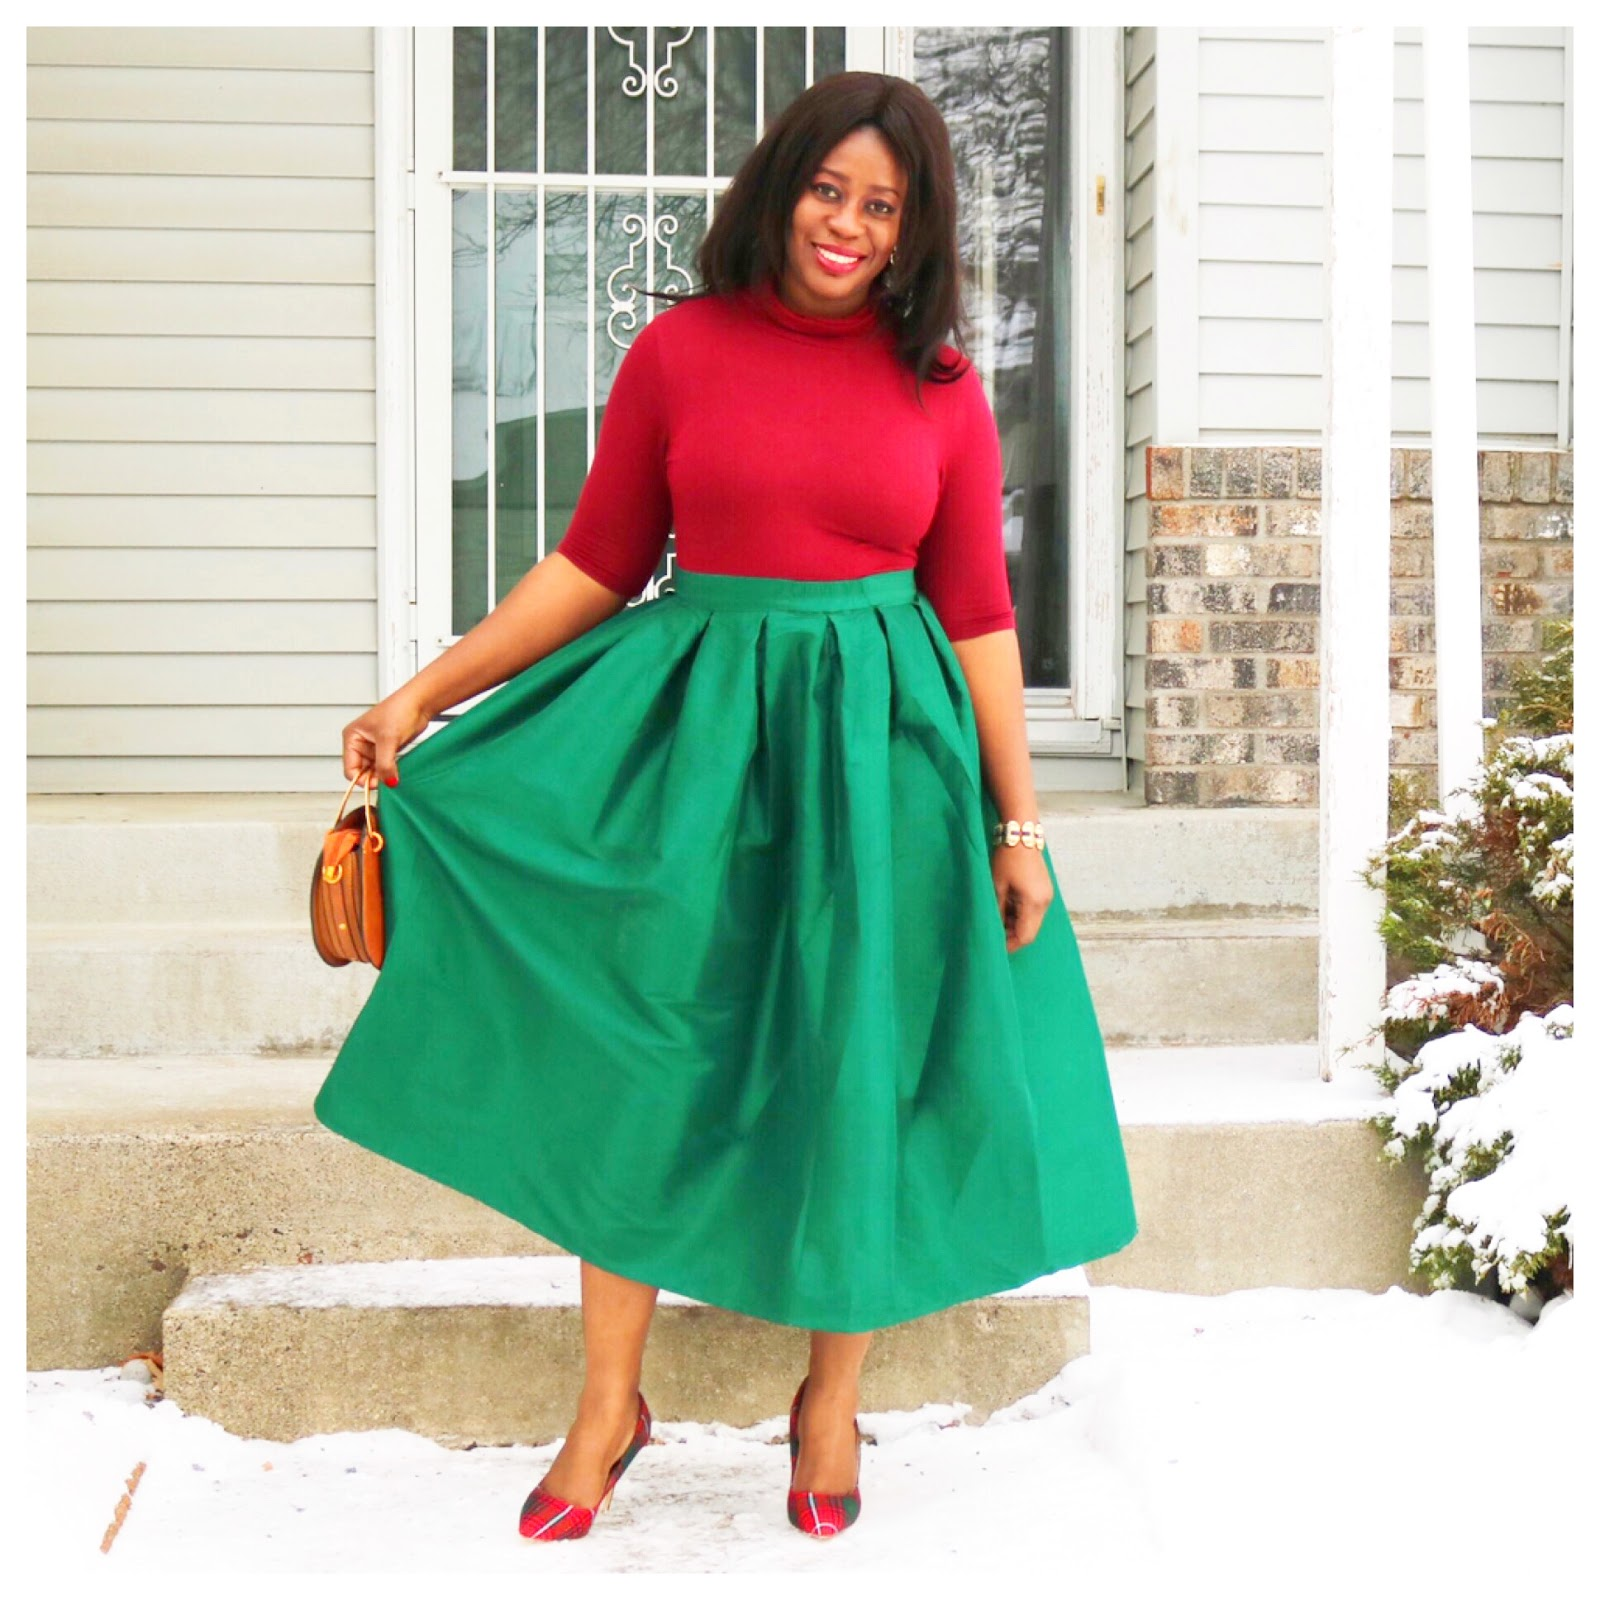 Beauty's Fashion Zone: Holiday Style: Green Circle Skirt